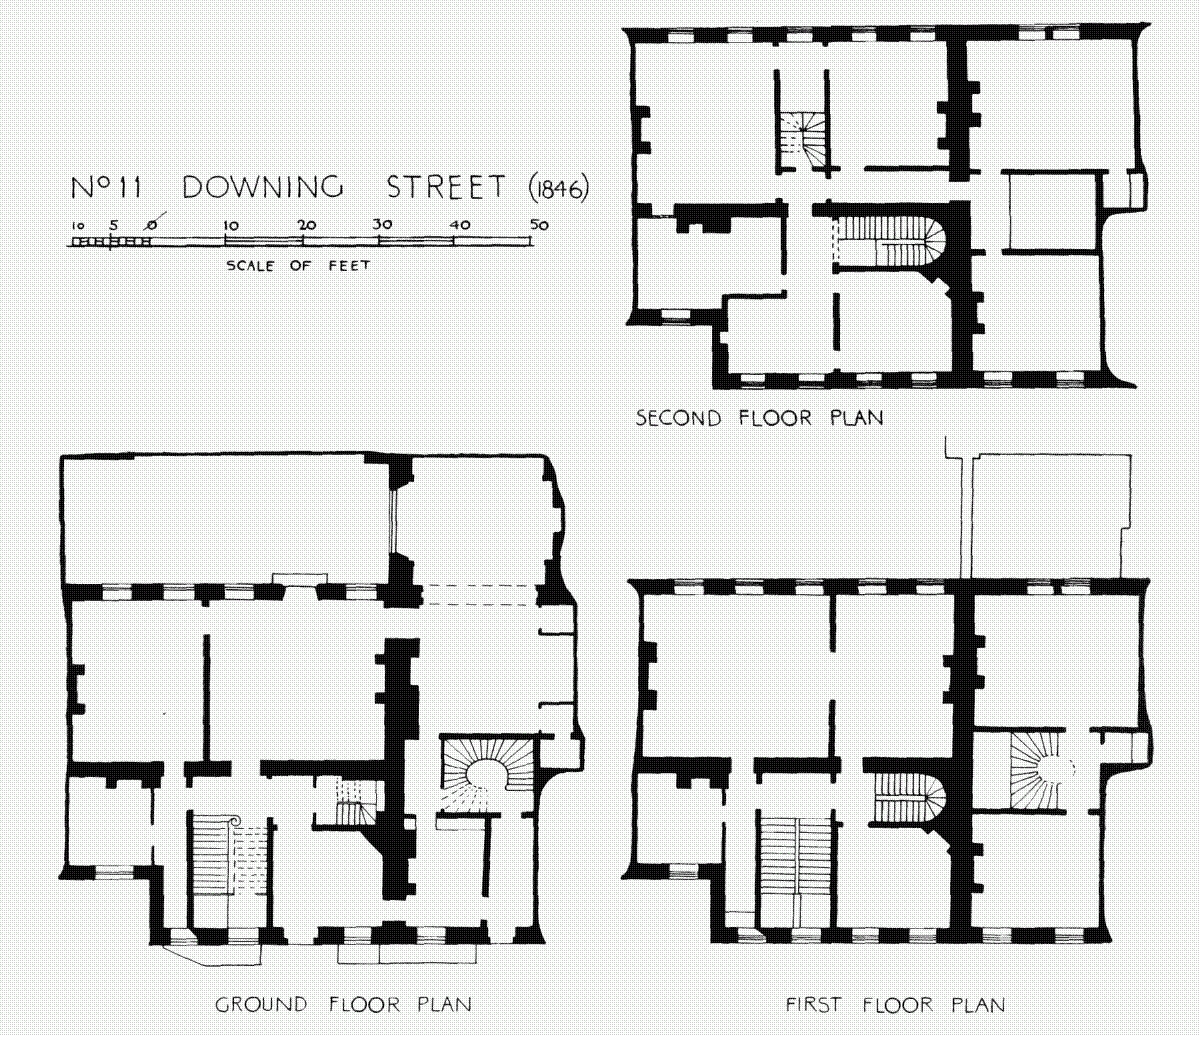 Downing Street Floor Plans London Uk